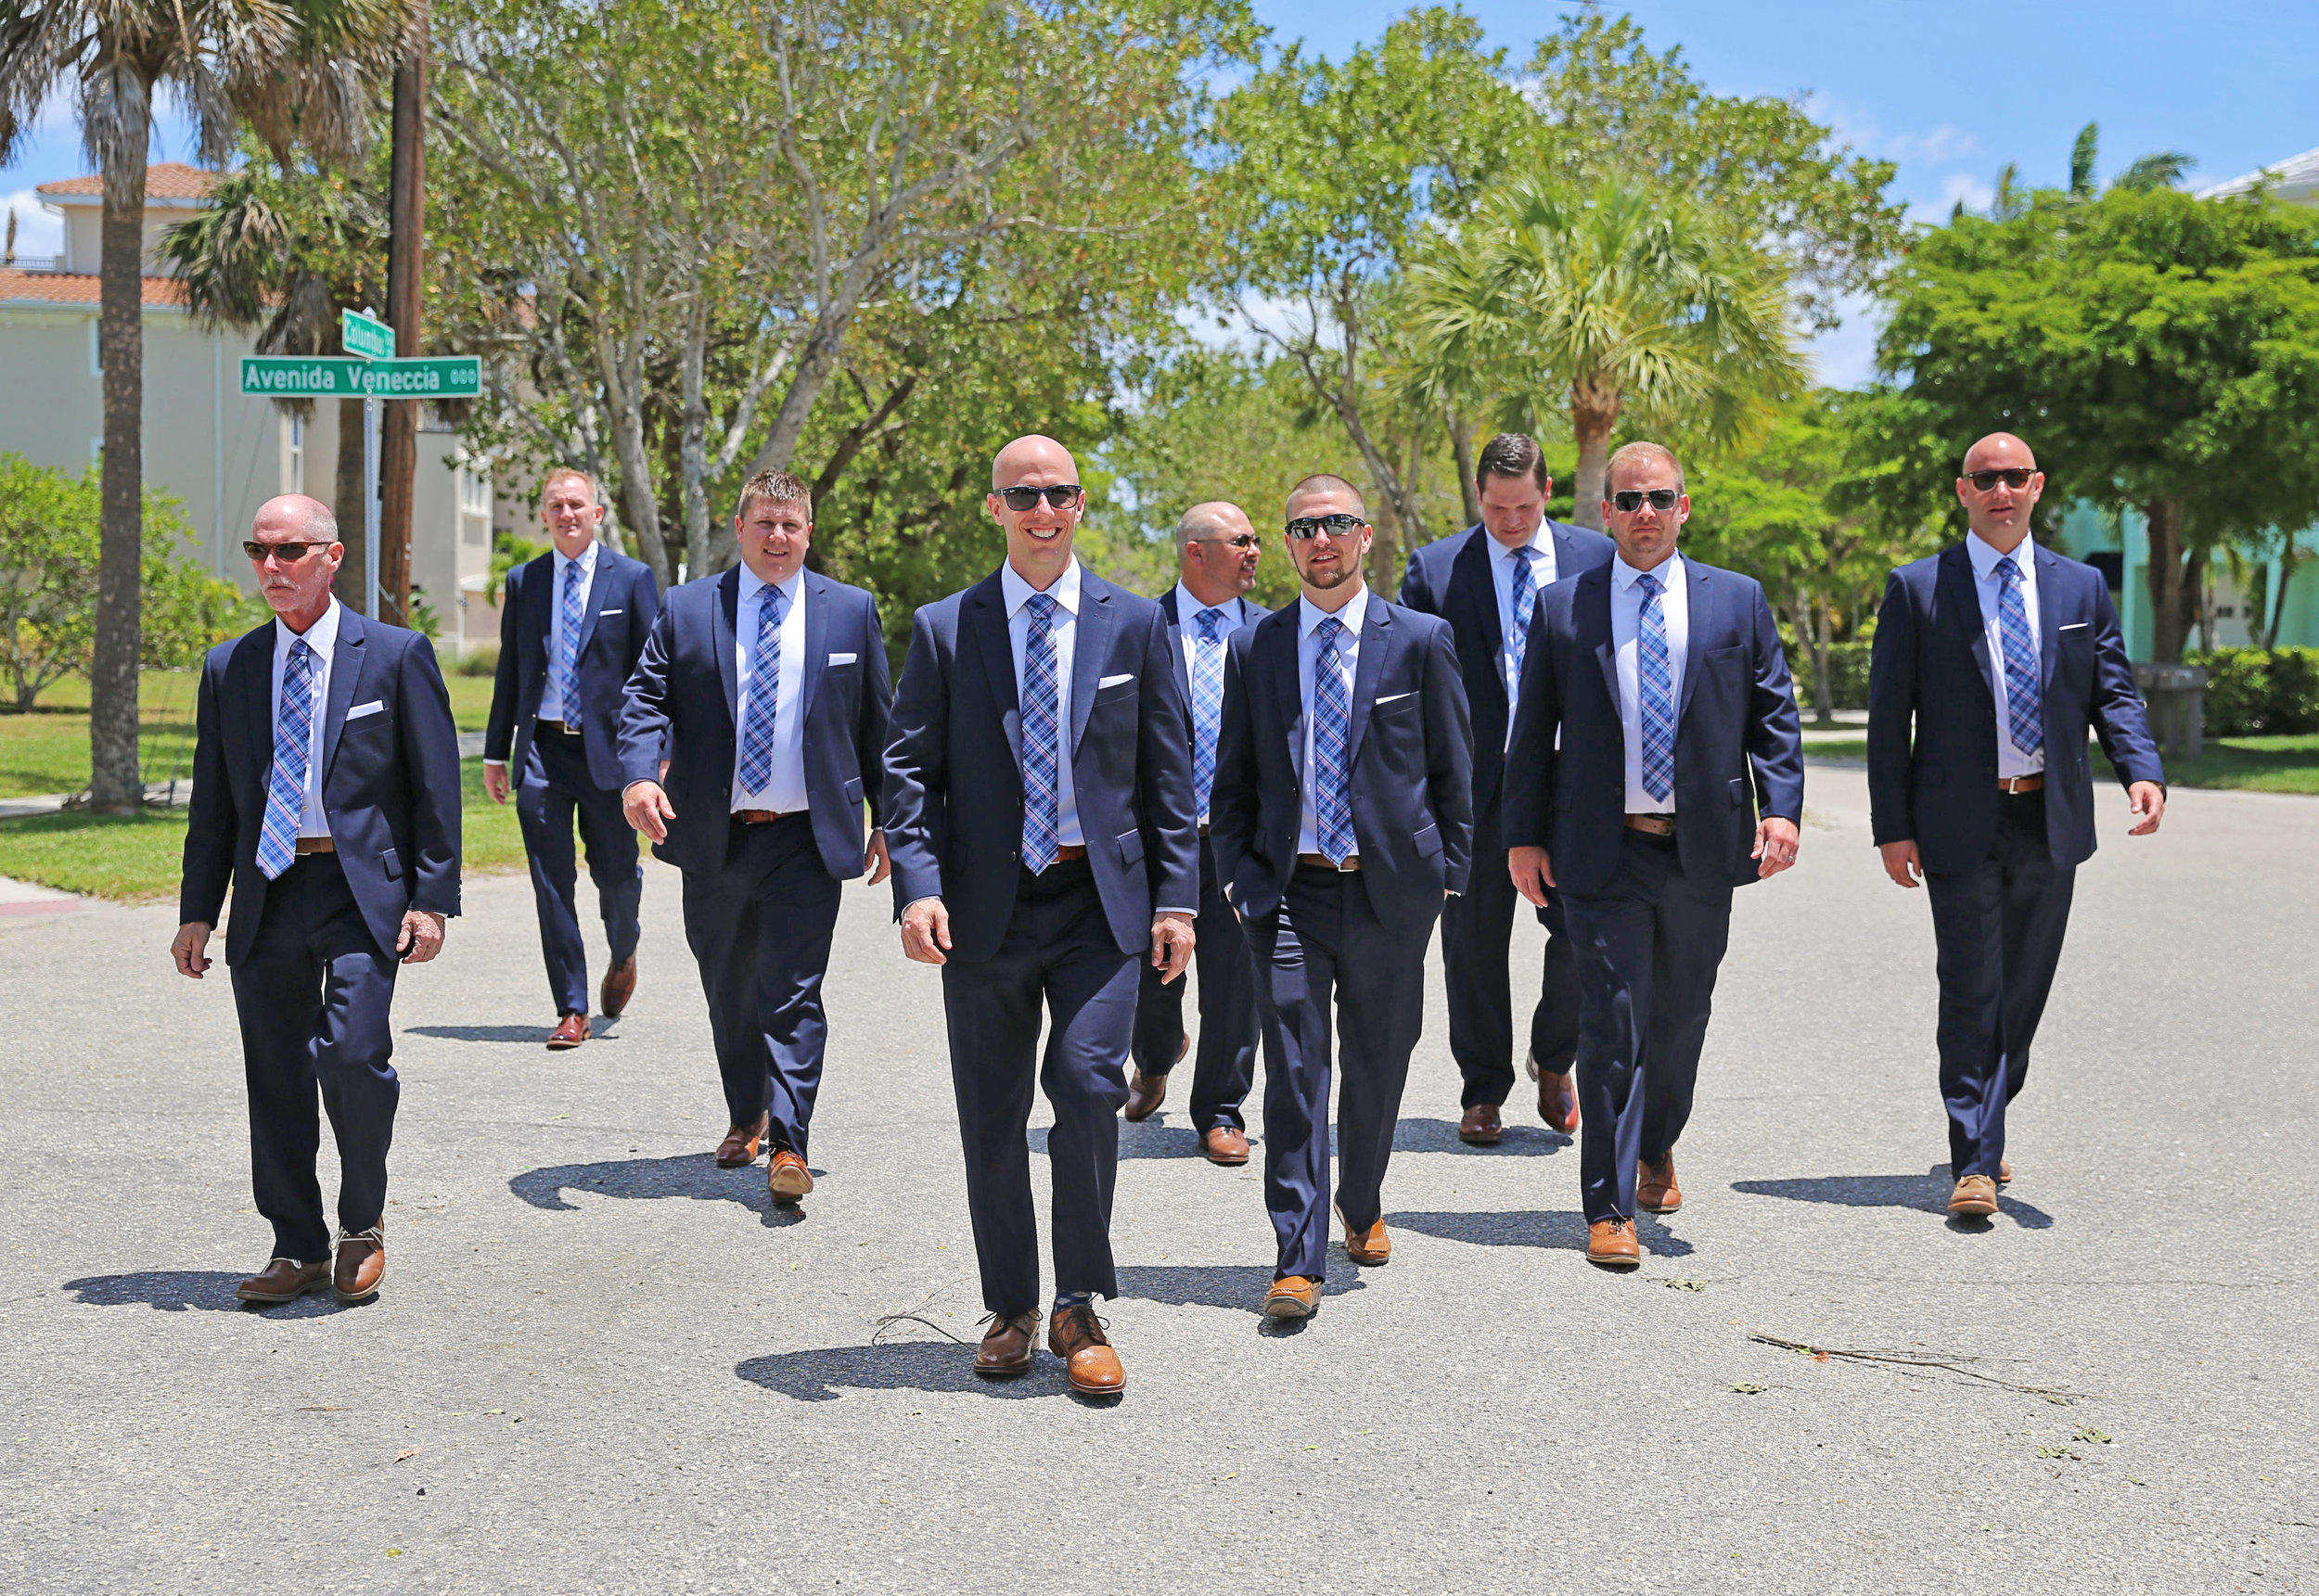 The groomsmen wore matching navy suits, perfect for a chic island wedding.